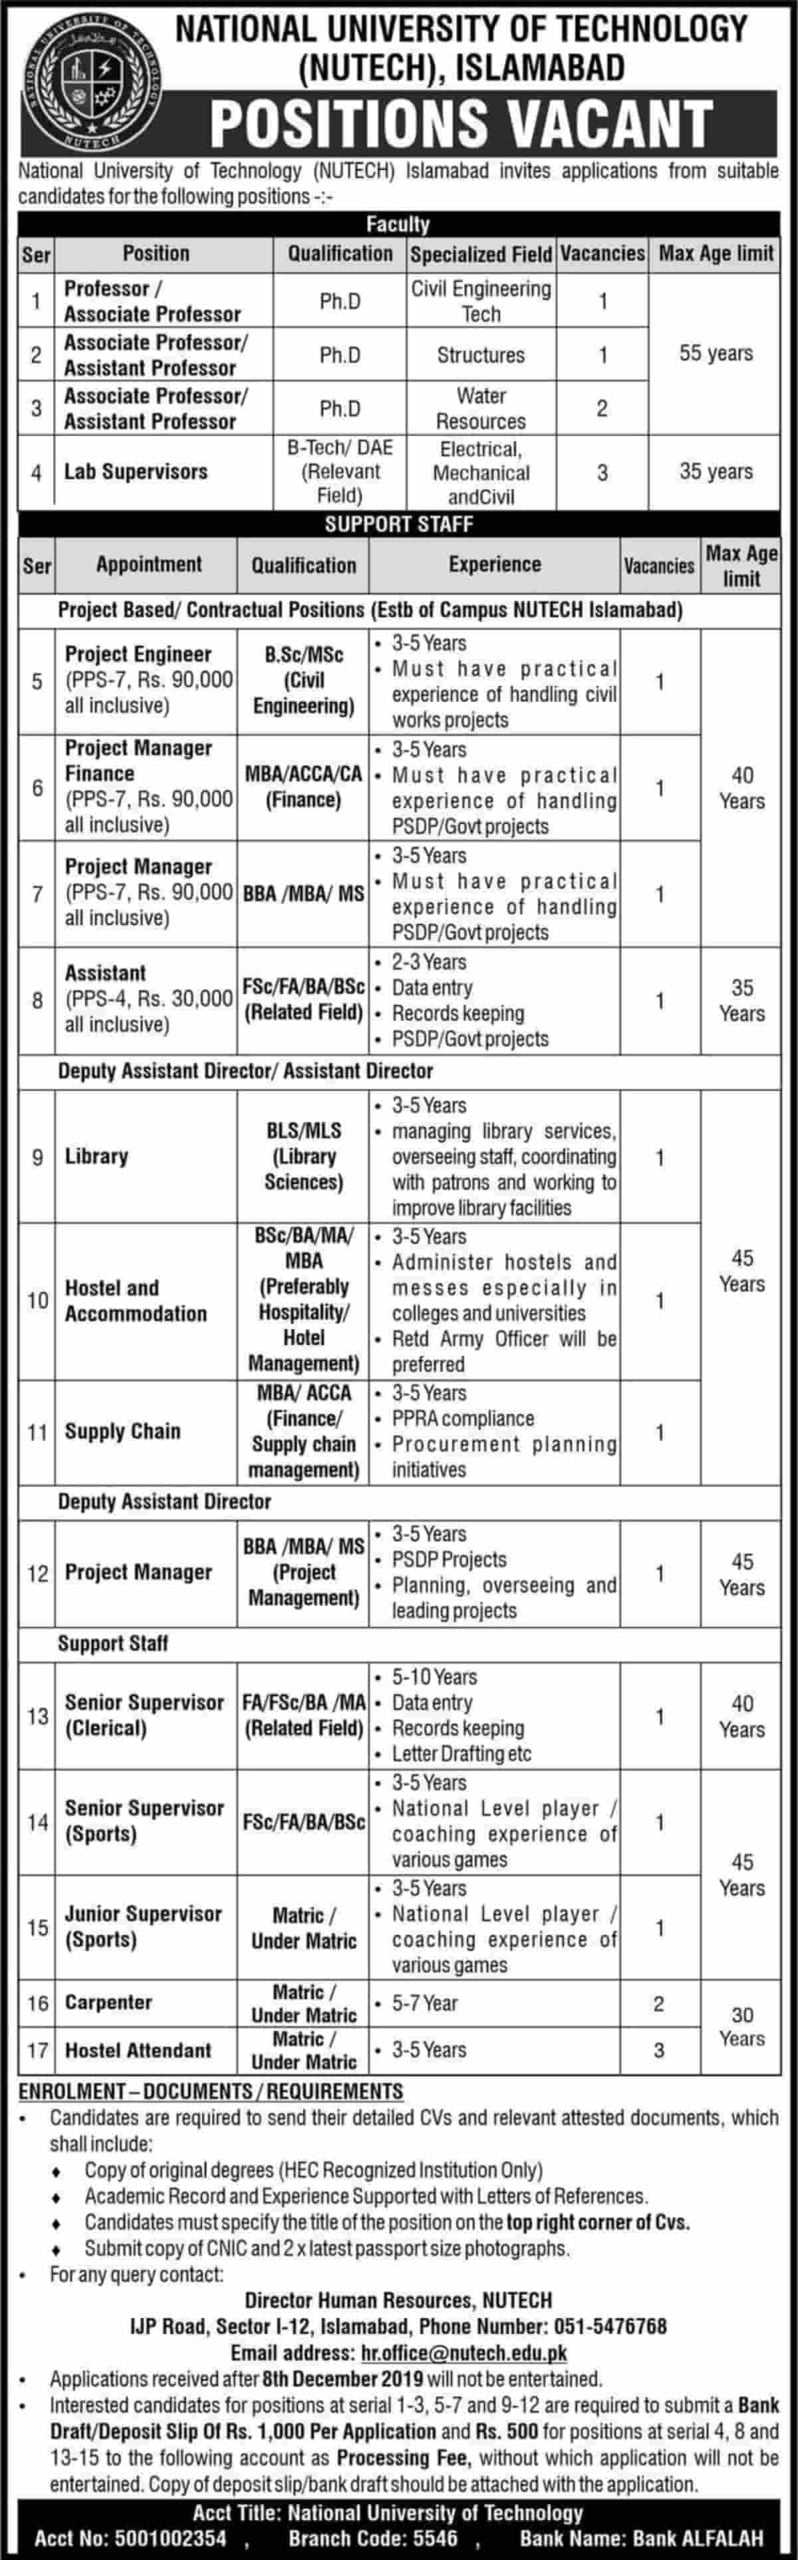 National University of Technology NUTECH Islamabad Jobs 2019 Latest Advertisement